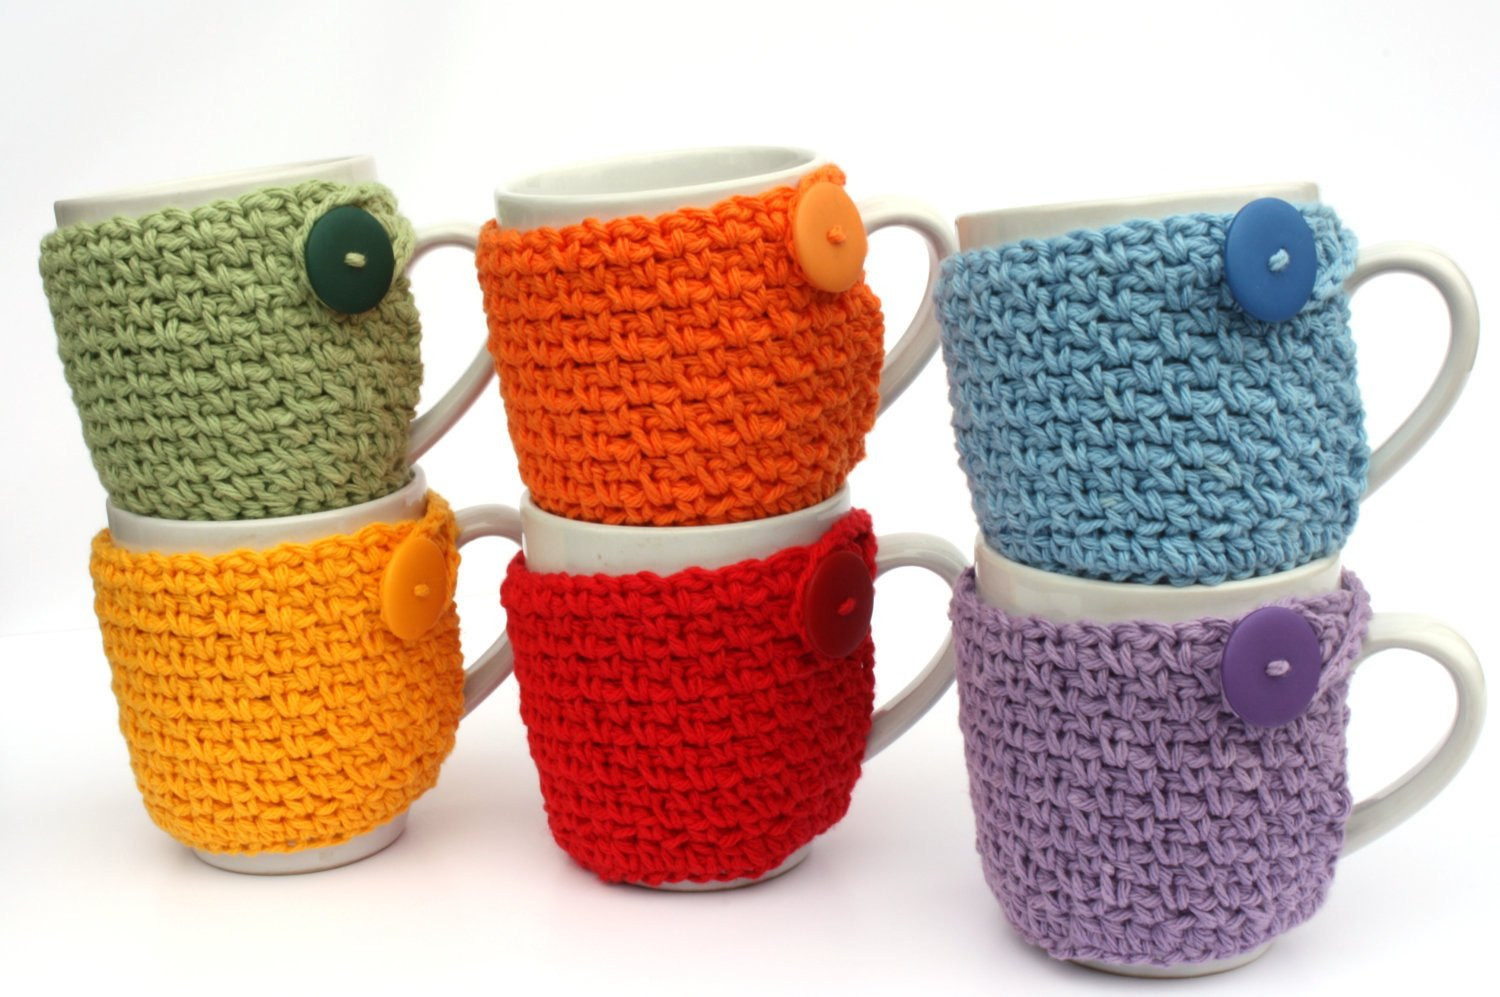 Crochet Coffee Cup Cozy Lovely Coffee Cup Cozy Crochet Cup Sleeve You Pick the by Sweetbriers Of Crochet Coffee Cup Cozy Awesome Free Mug Cozy Crochet Patterns with Worsted Weight Yarn